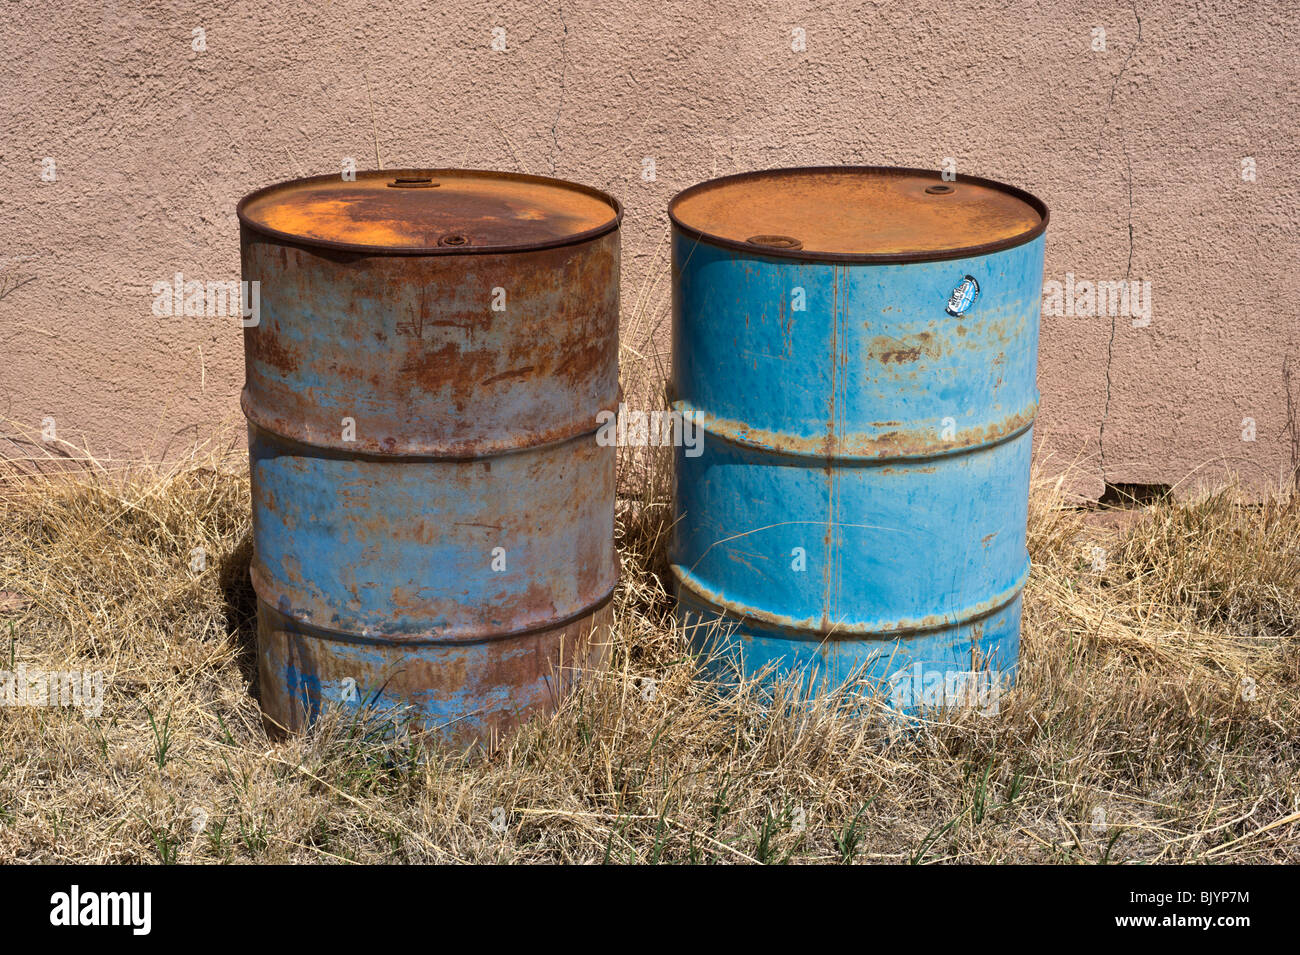 two blue 55 gallon drums sit rusting in front of an adobe wall in billy the